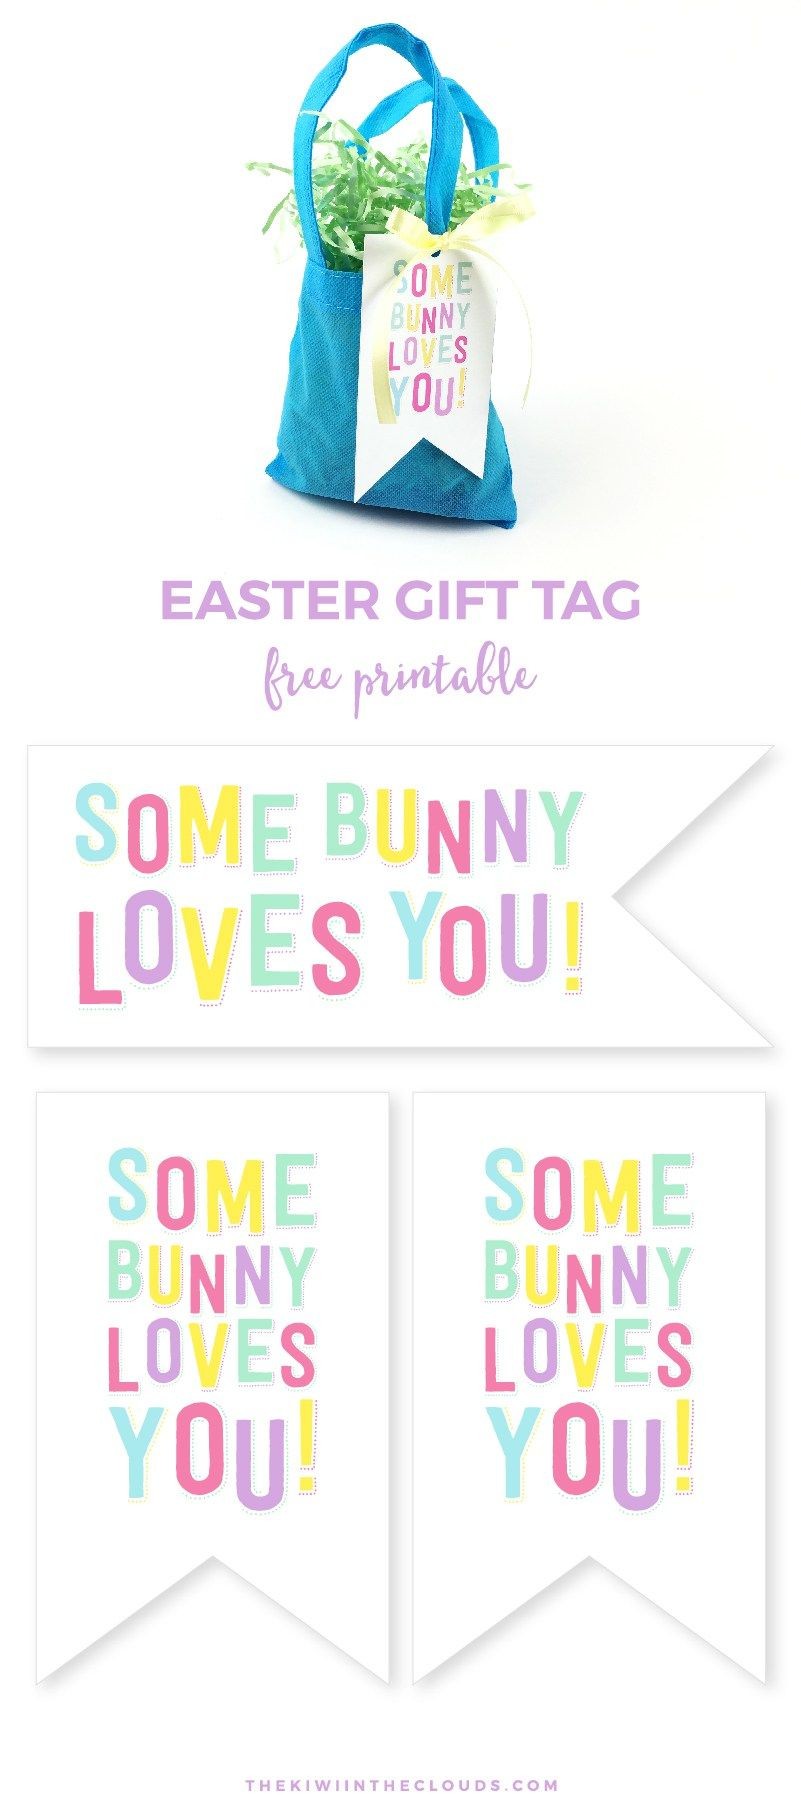 Somebunny loves you free printable easter tag negle Choice Image